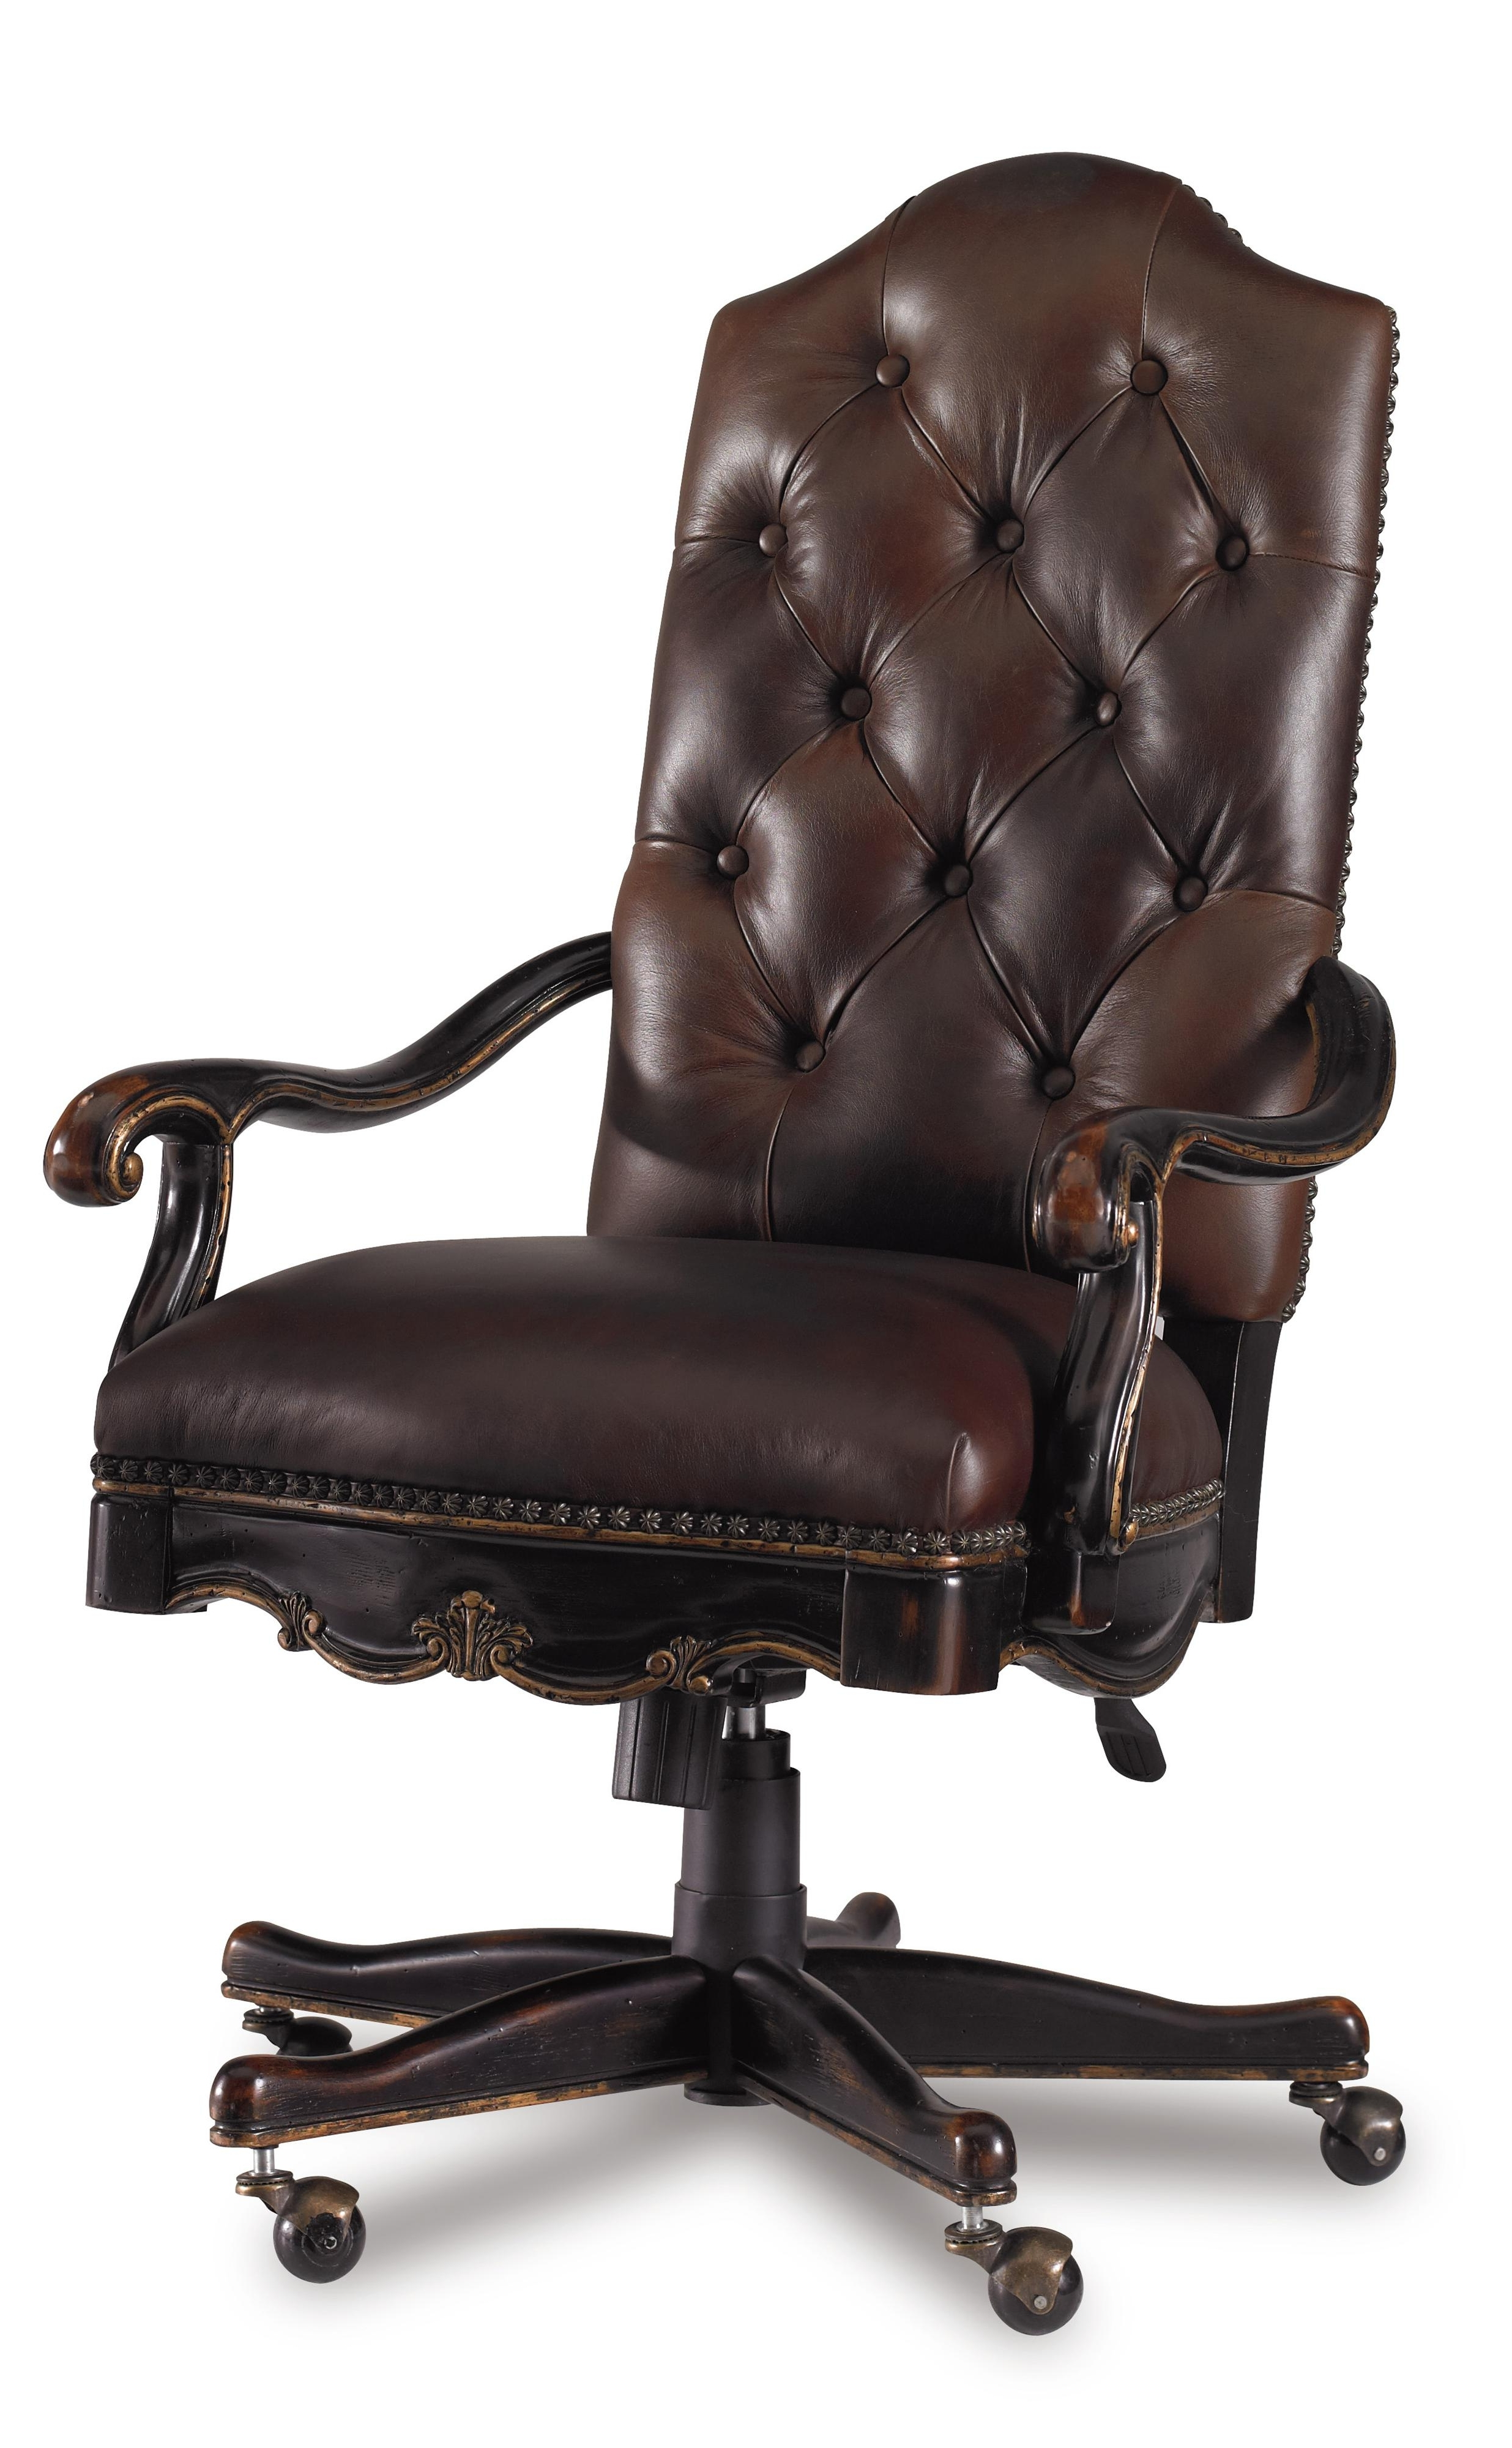 Hooker Furniture Grandover Tufted Leather Executive Office Chair Inside Fashionable Traditional Executive Office Chairs (View 3 of 20)